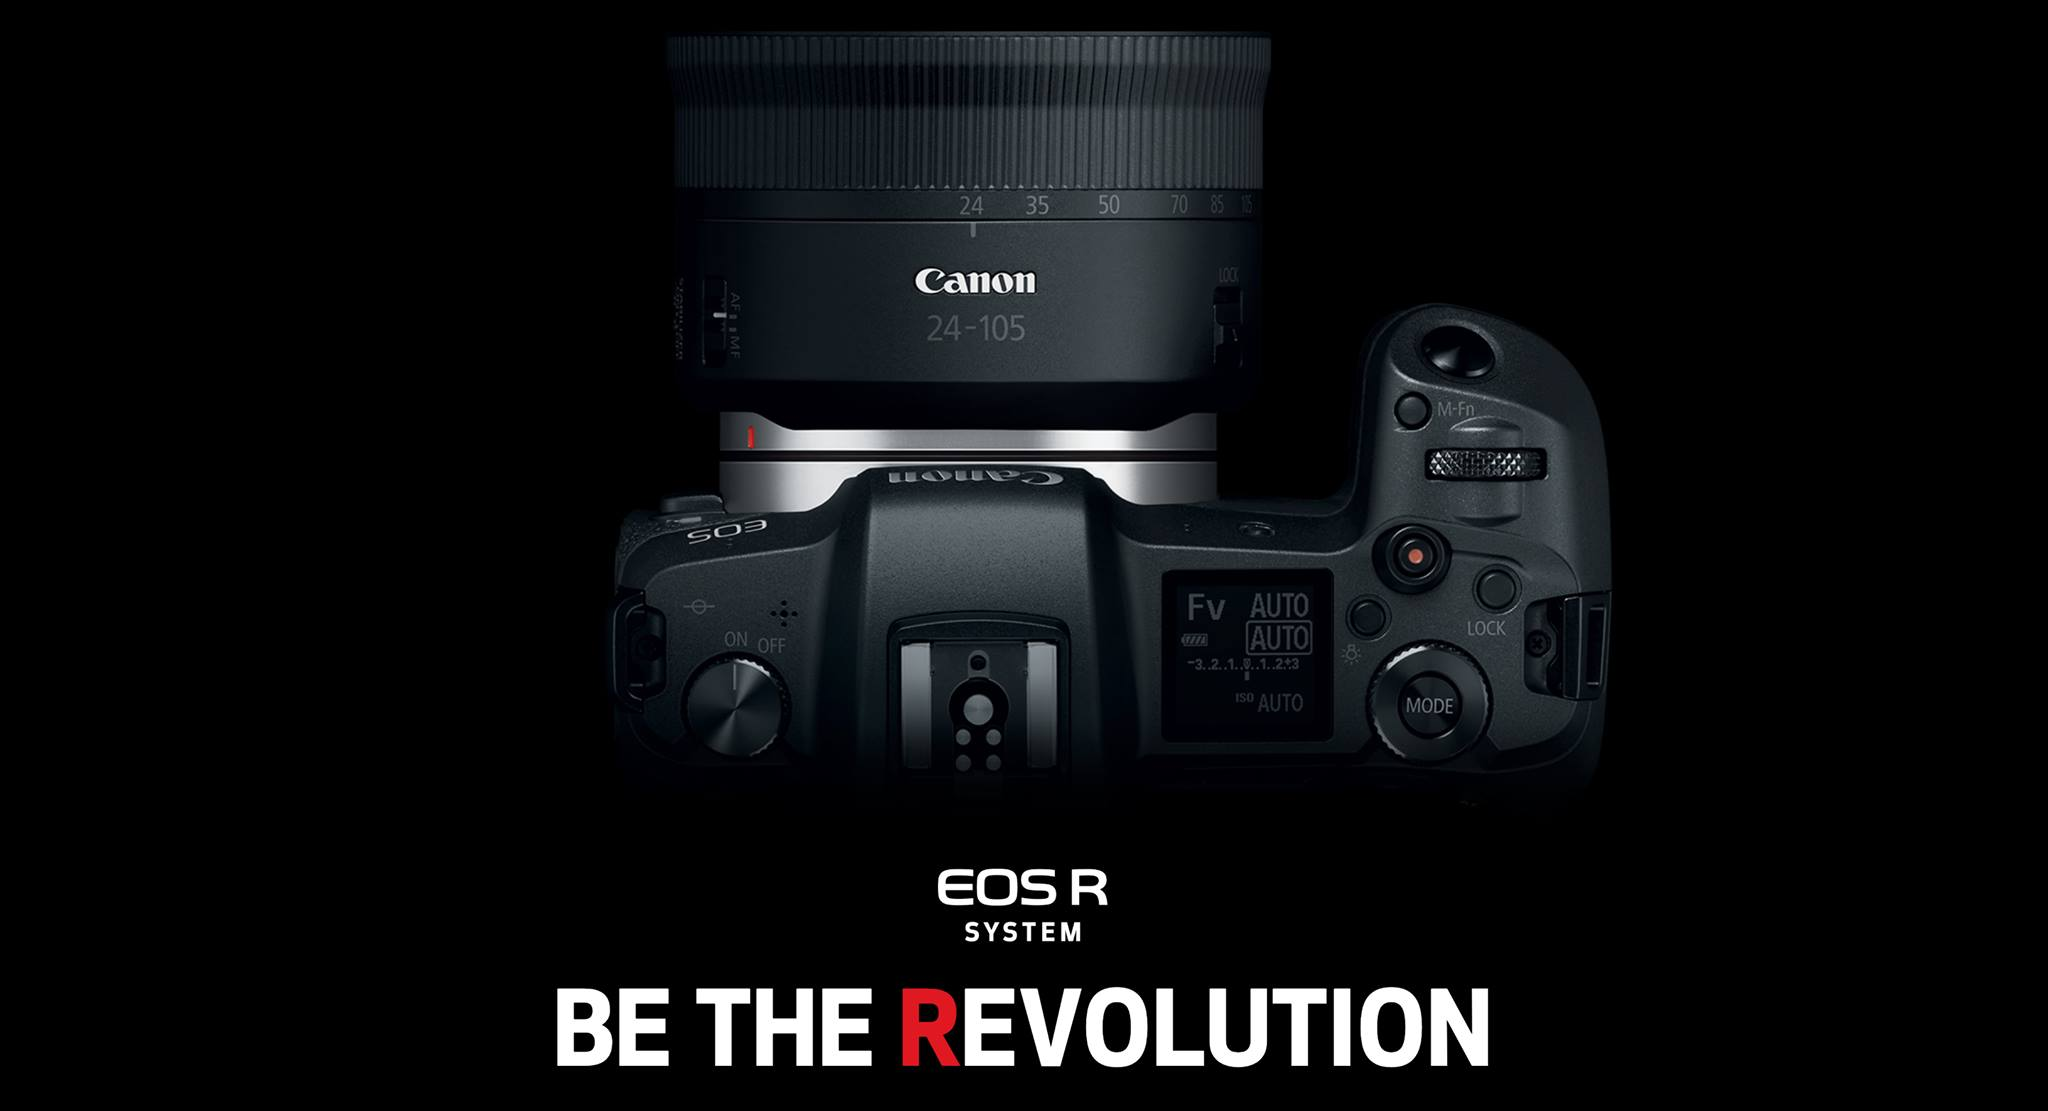 Canon rumors: 100MP mirrorless EOS R camera with IBIS is a